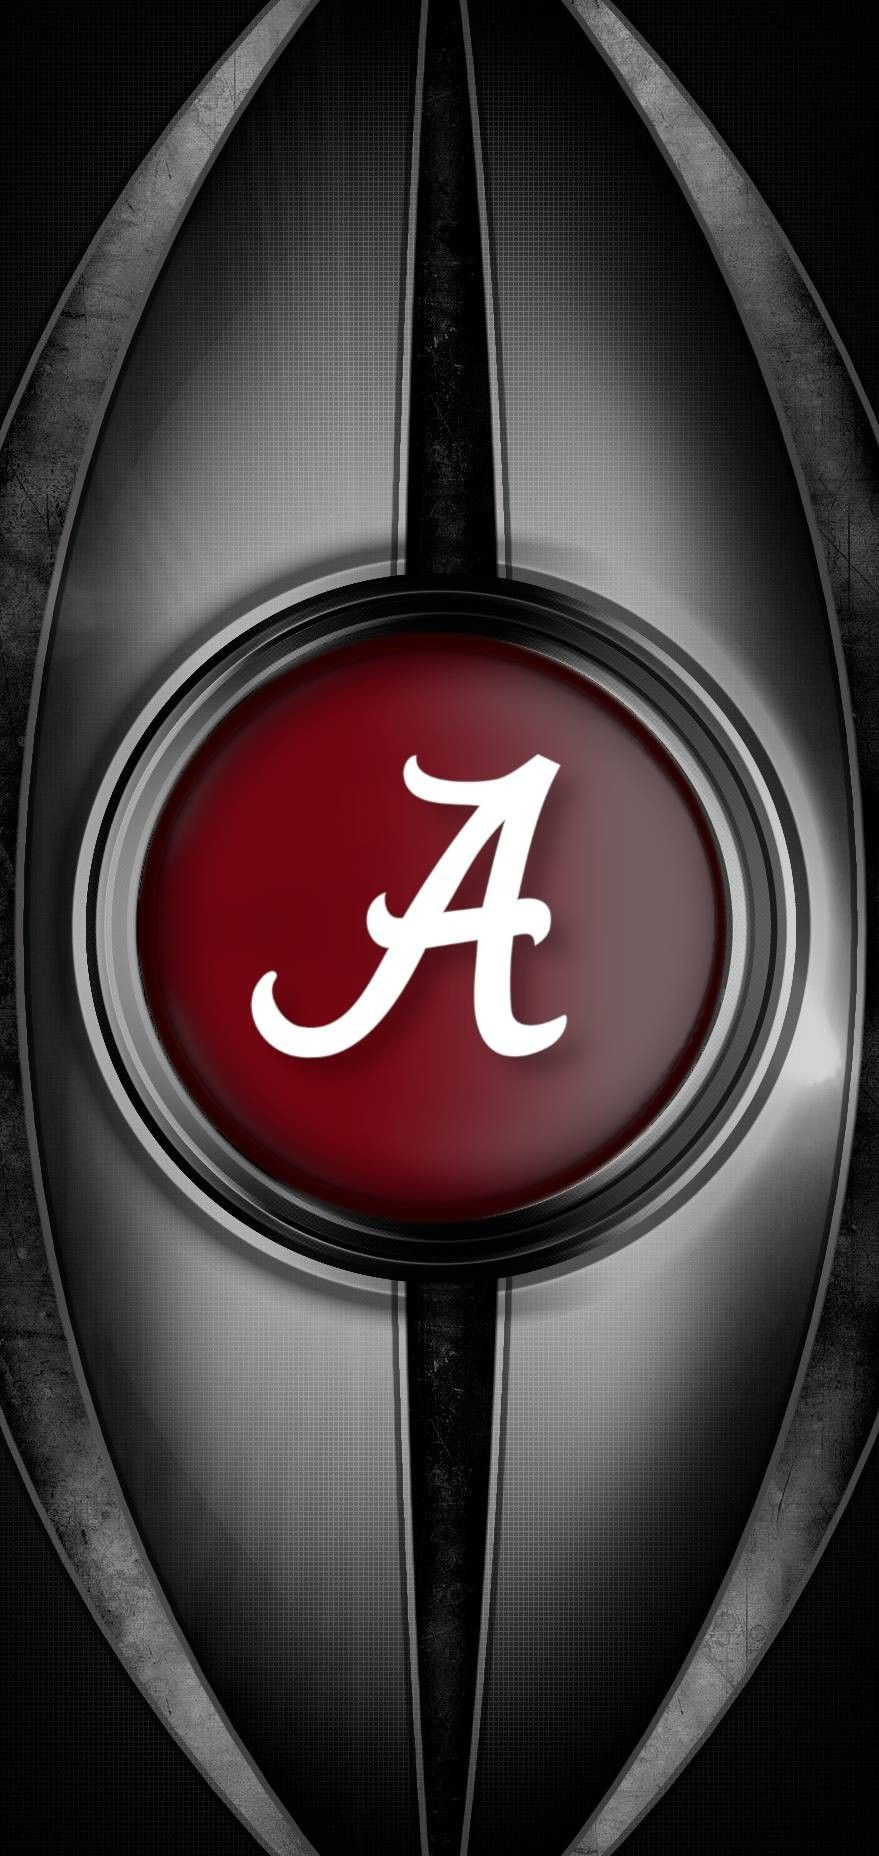 Pin By Jack Cothren On Alabama Football In 2020 Alabama Crimson Tide Football Wallpaper Alabama Wallpaper Alabama Crimson Tide